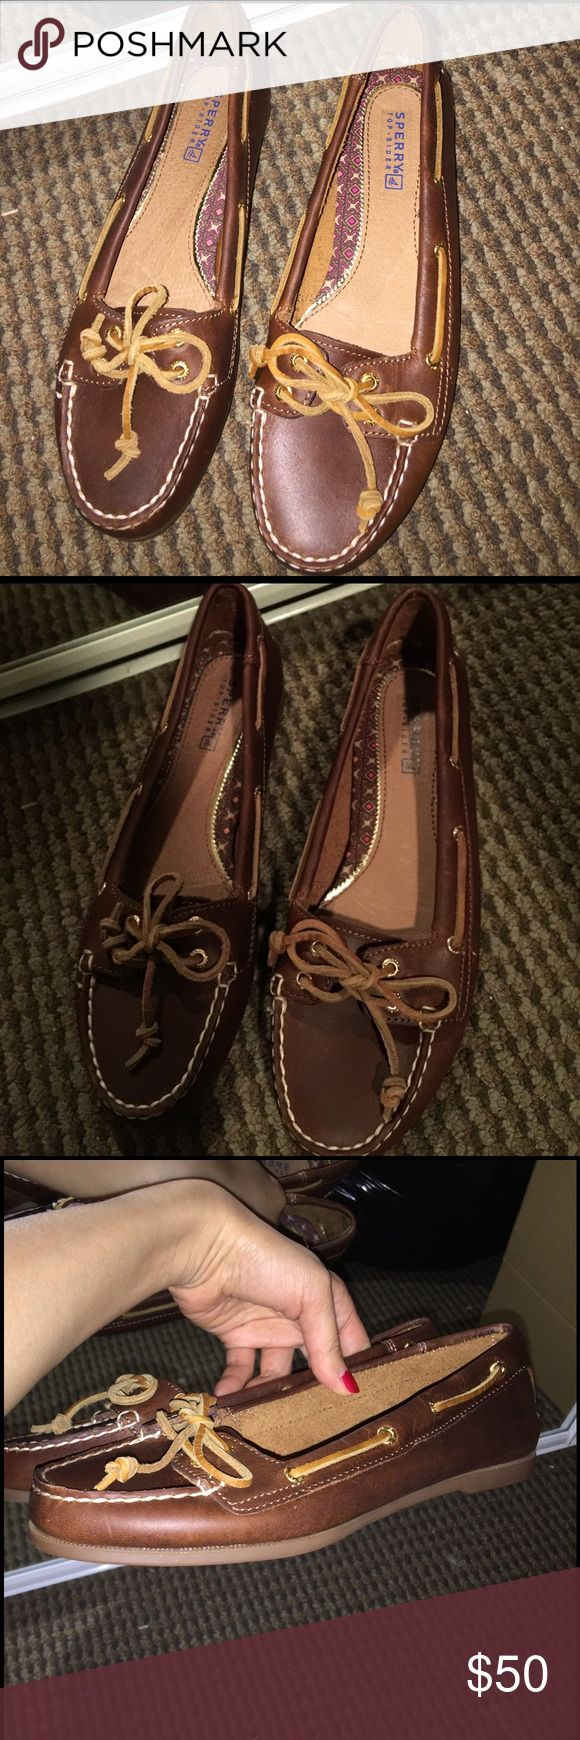 New Sperry top-sided boat shoes 7M New without box leather boat shoes Sperry Top-Sider Shoes Flats & Loafers